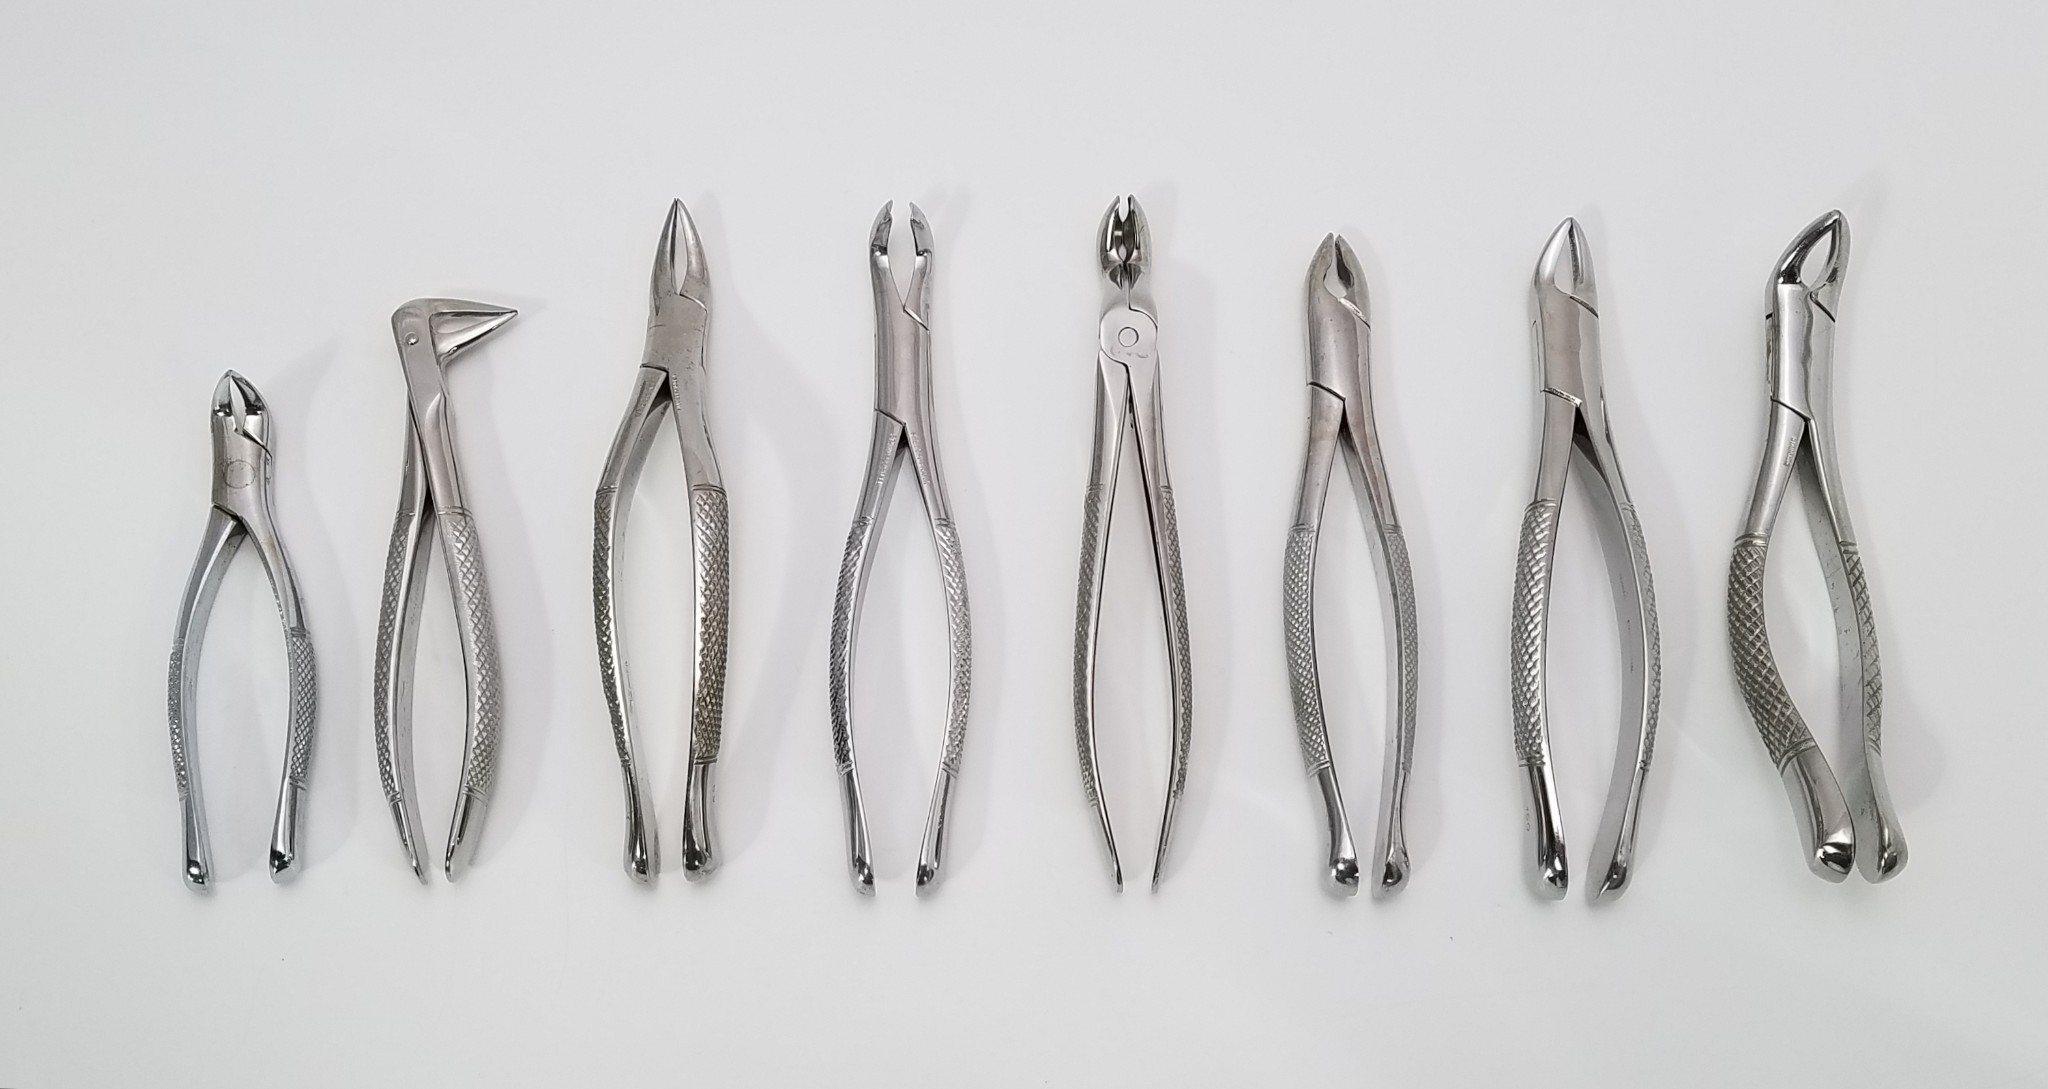 Dental Tooth Extraction Forceps For Upper Lower Roots Set Of 8 1 For Sale Labx Ad 4727293